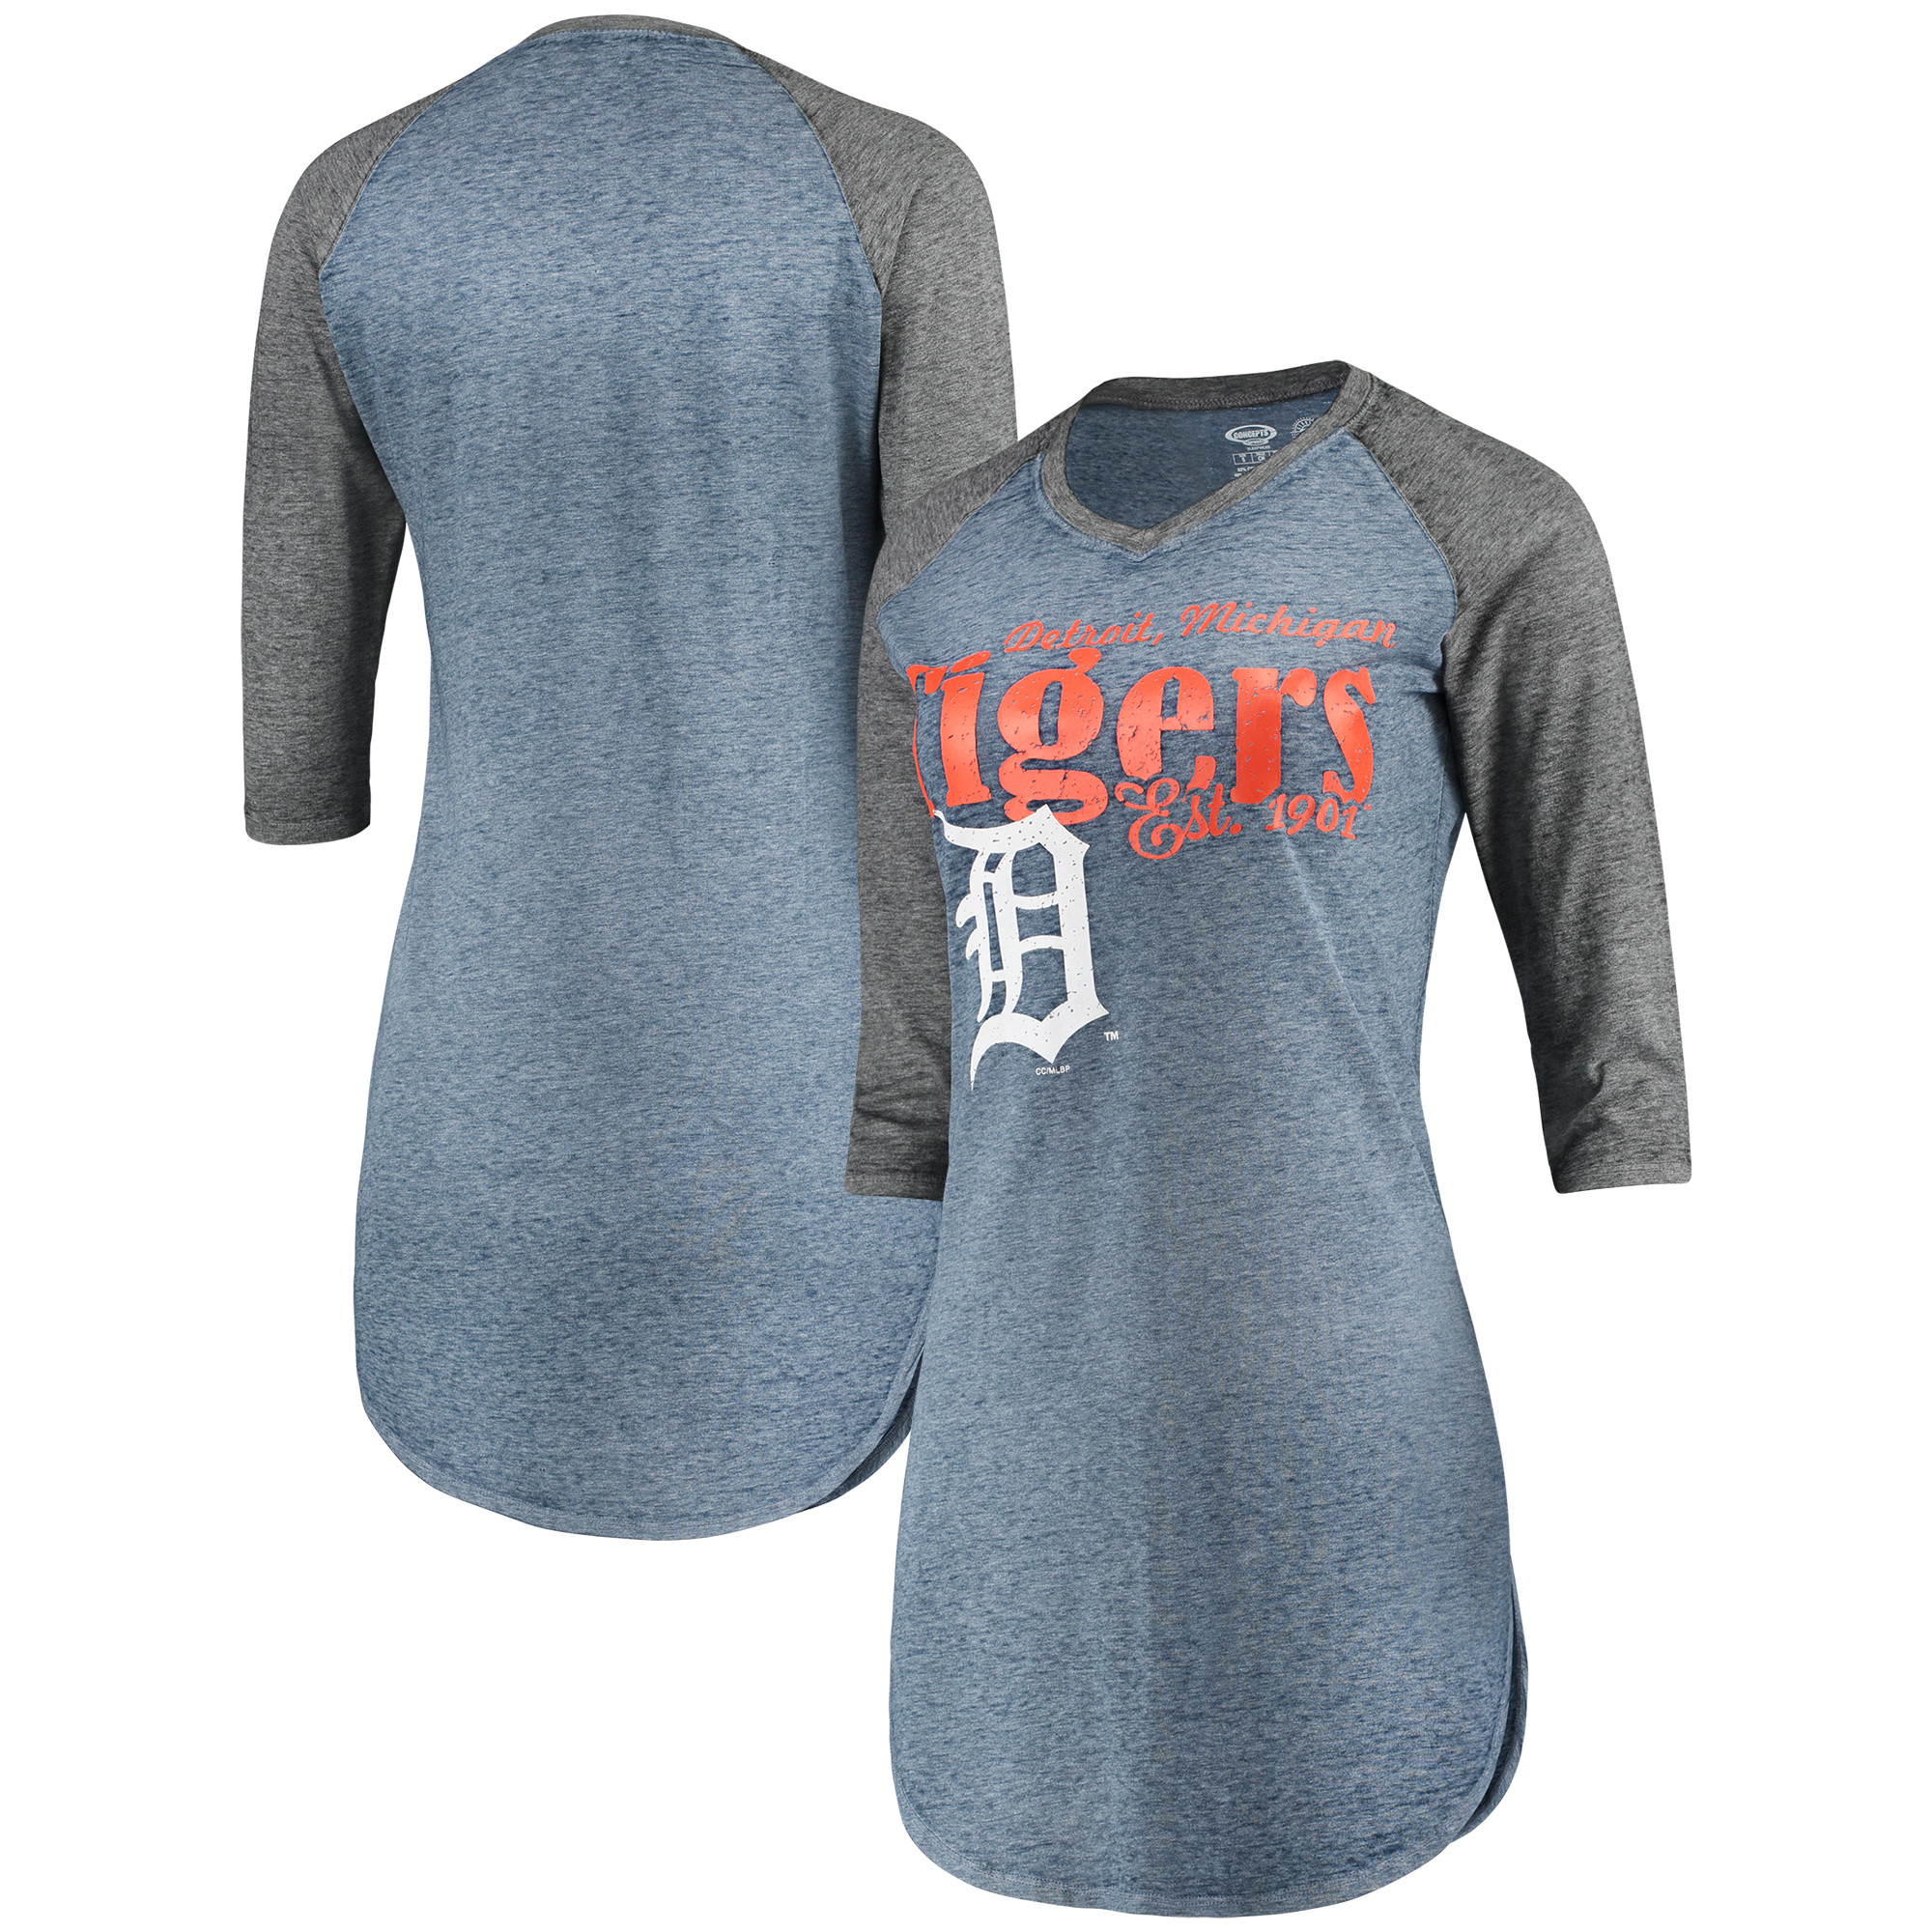 Detroit Tigers Concepts Sport Women's Deed Raglan Nightshirt - Heathered Navy